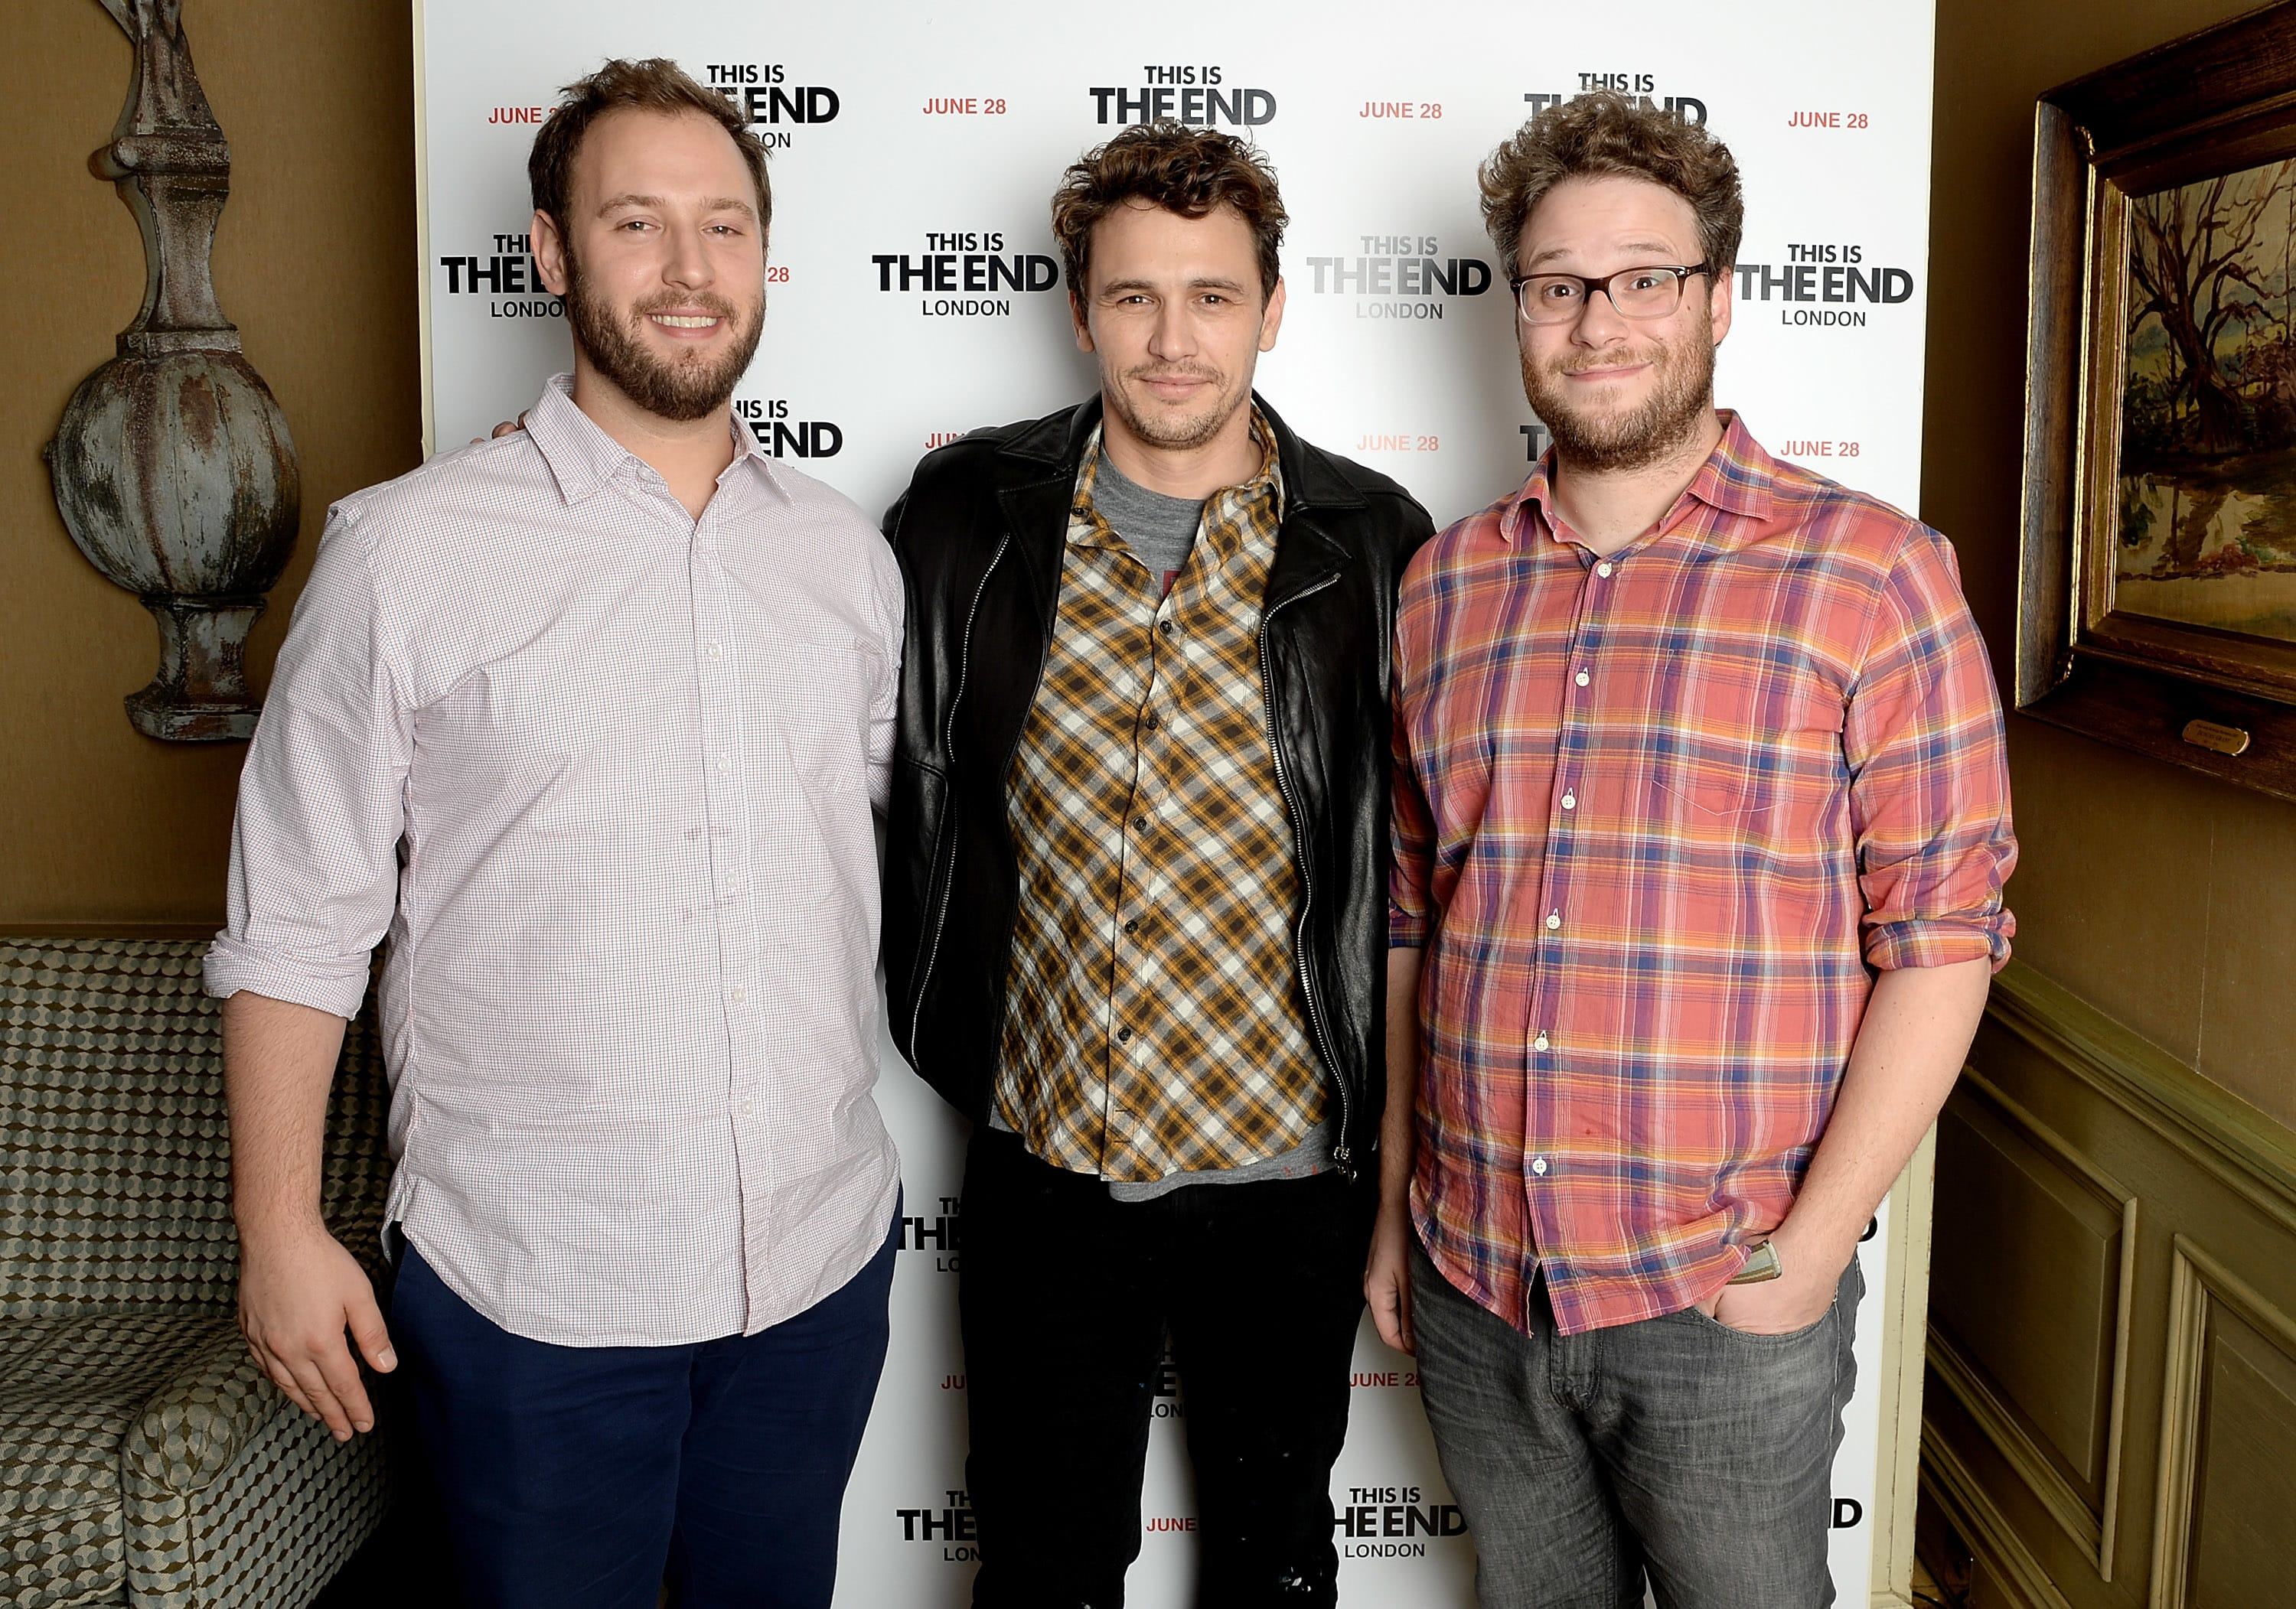 Evan Goldberg, James Franco and Seth Rogen at a special screening of 'This Is The End'